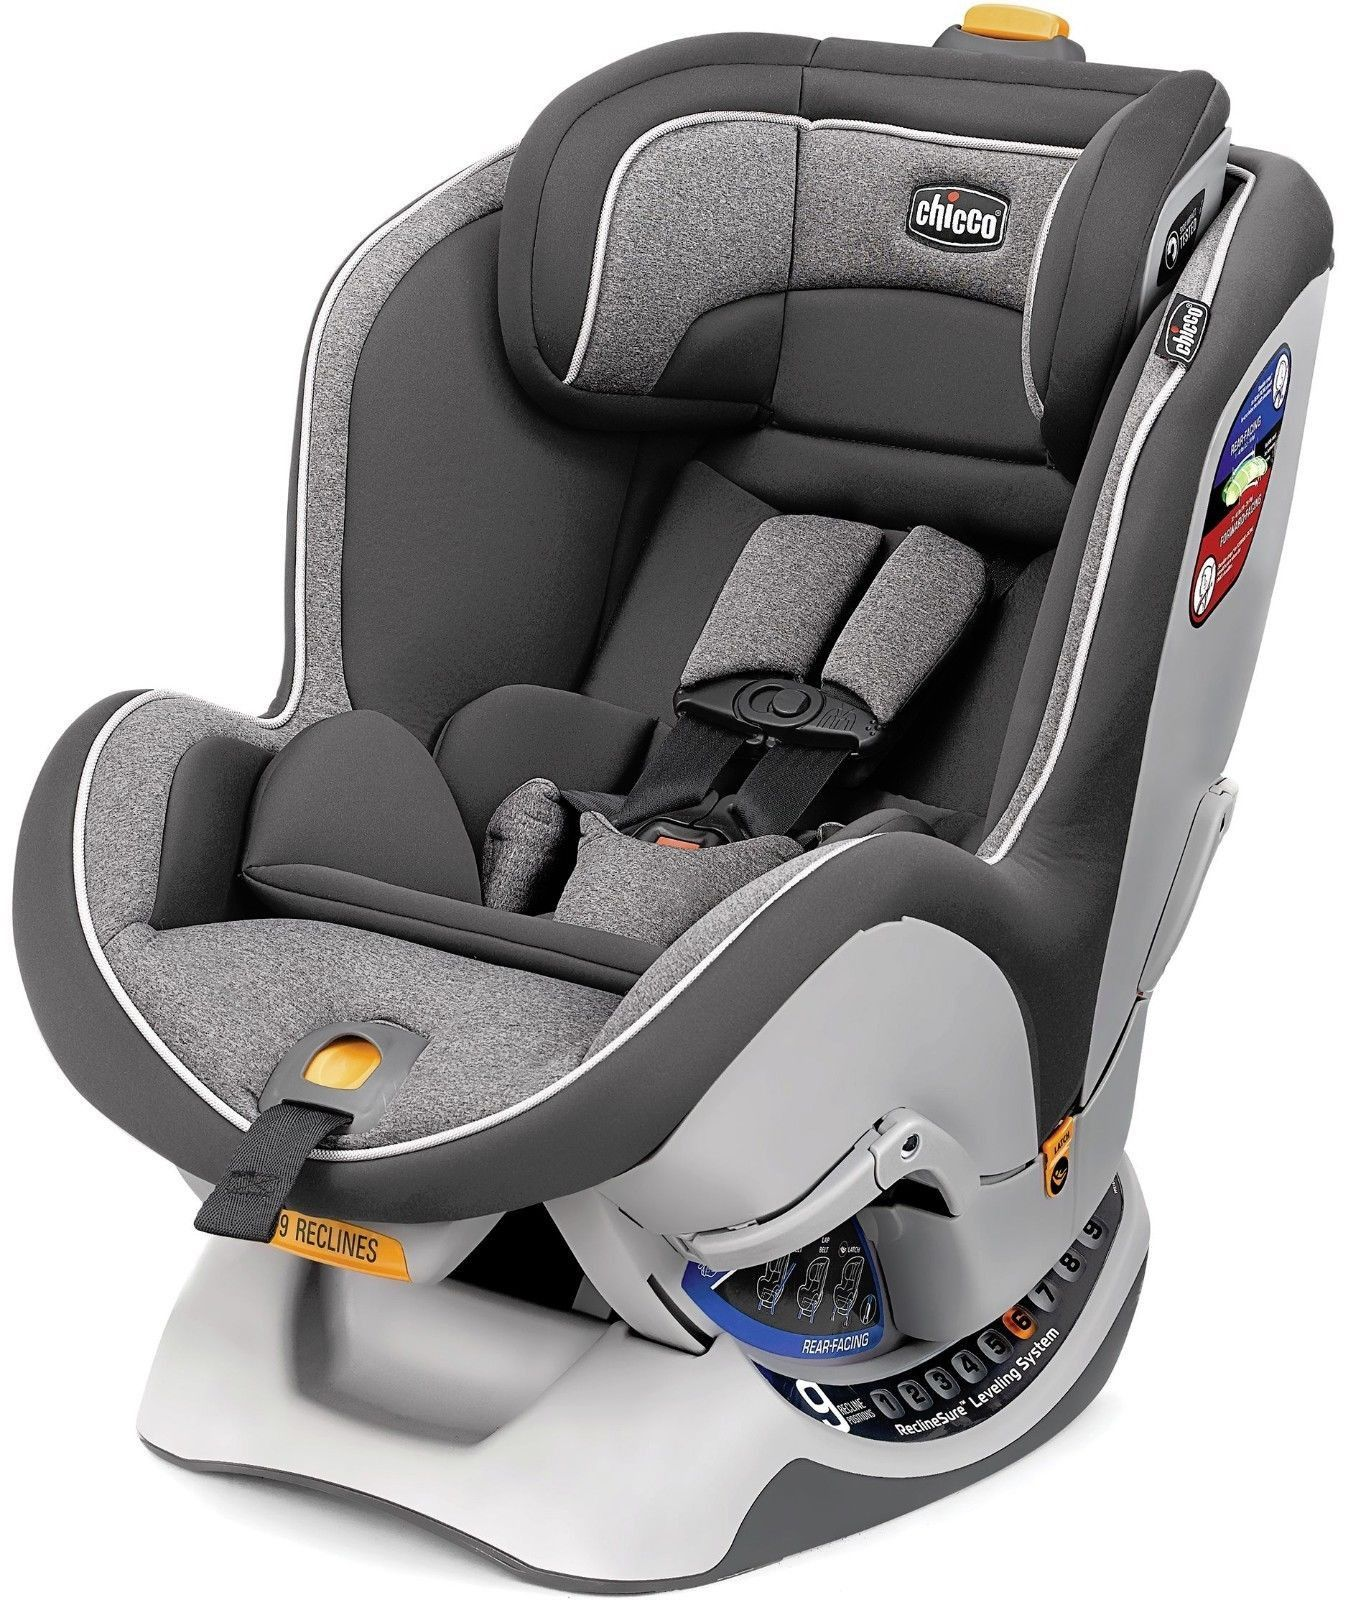 Chicco NextFit CX Convertible Child Safety Easy Install Car Seat Jasper